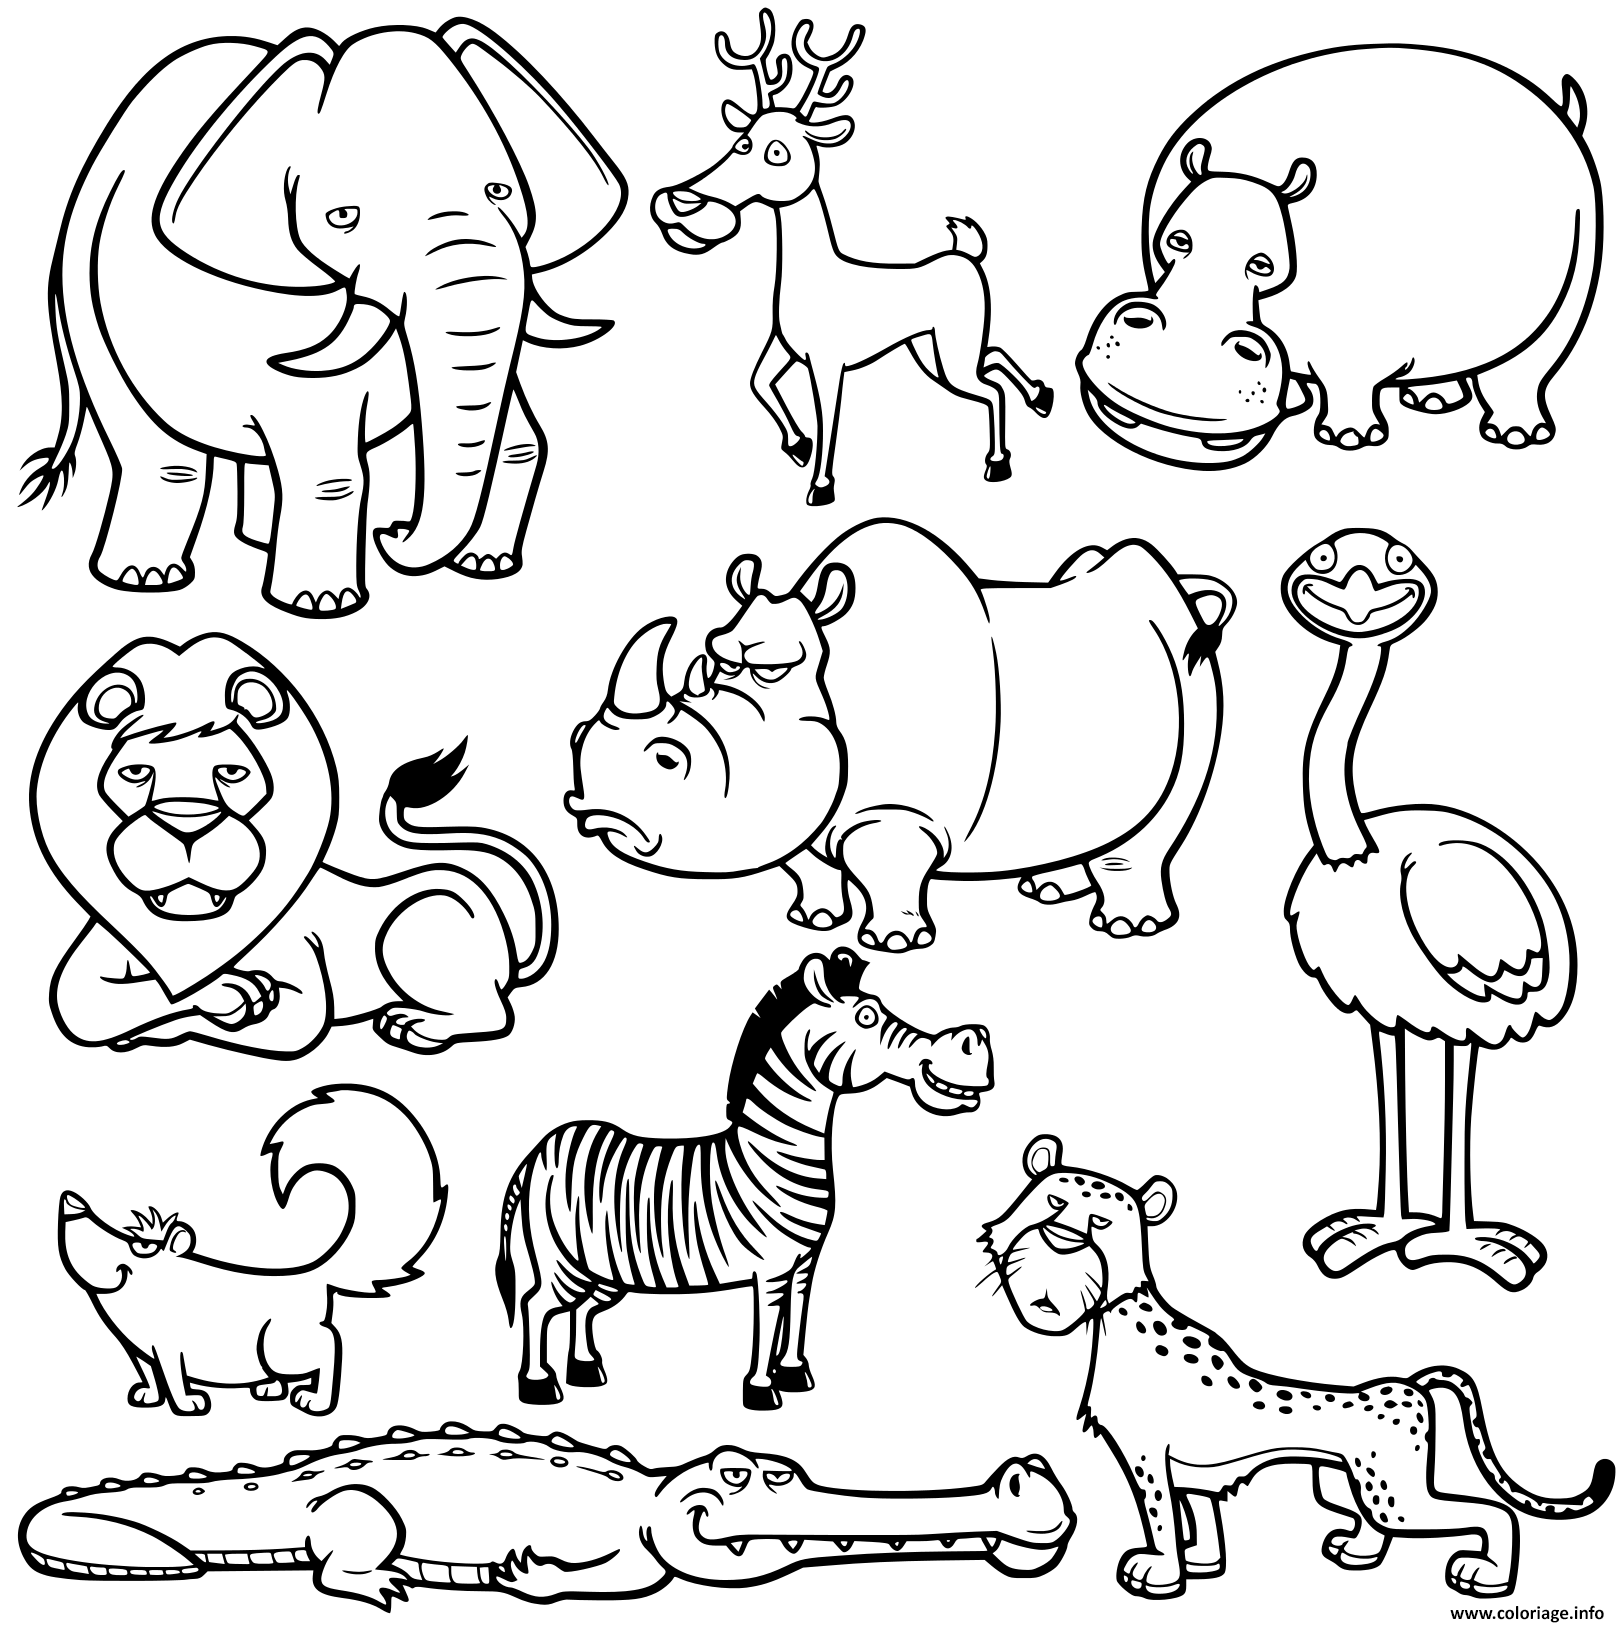 Coloriage animaux sauvages dessin - Coloriage animaux sauvages ...